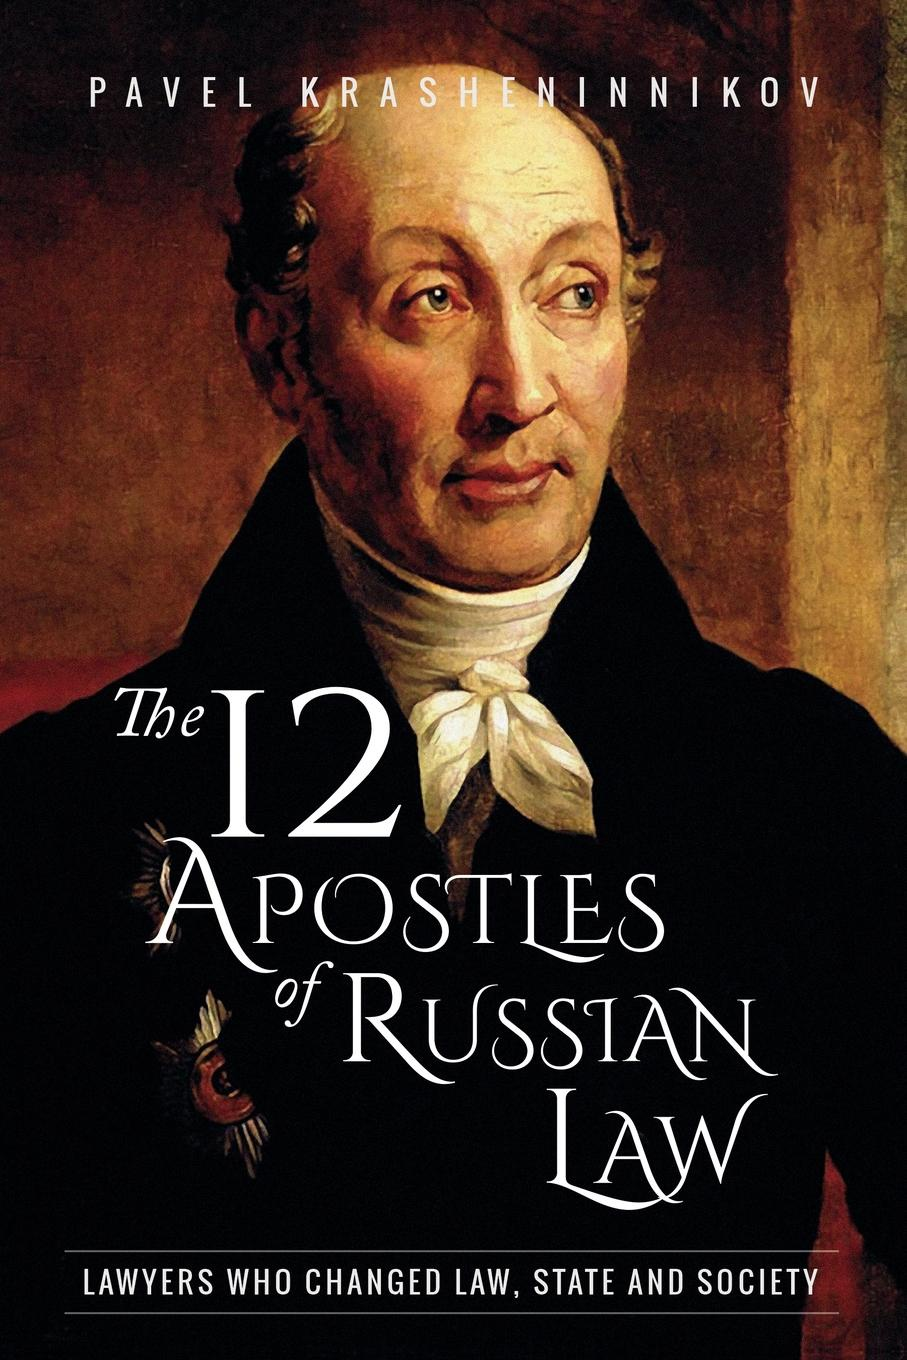 Pavel Krasheninnikov The 12 Apostles of Russian Law. Lawyers who changed law, state and society sports law in russia